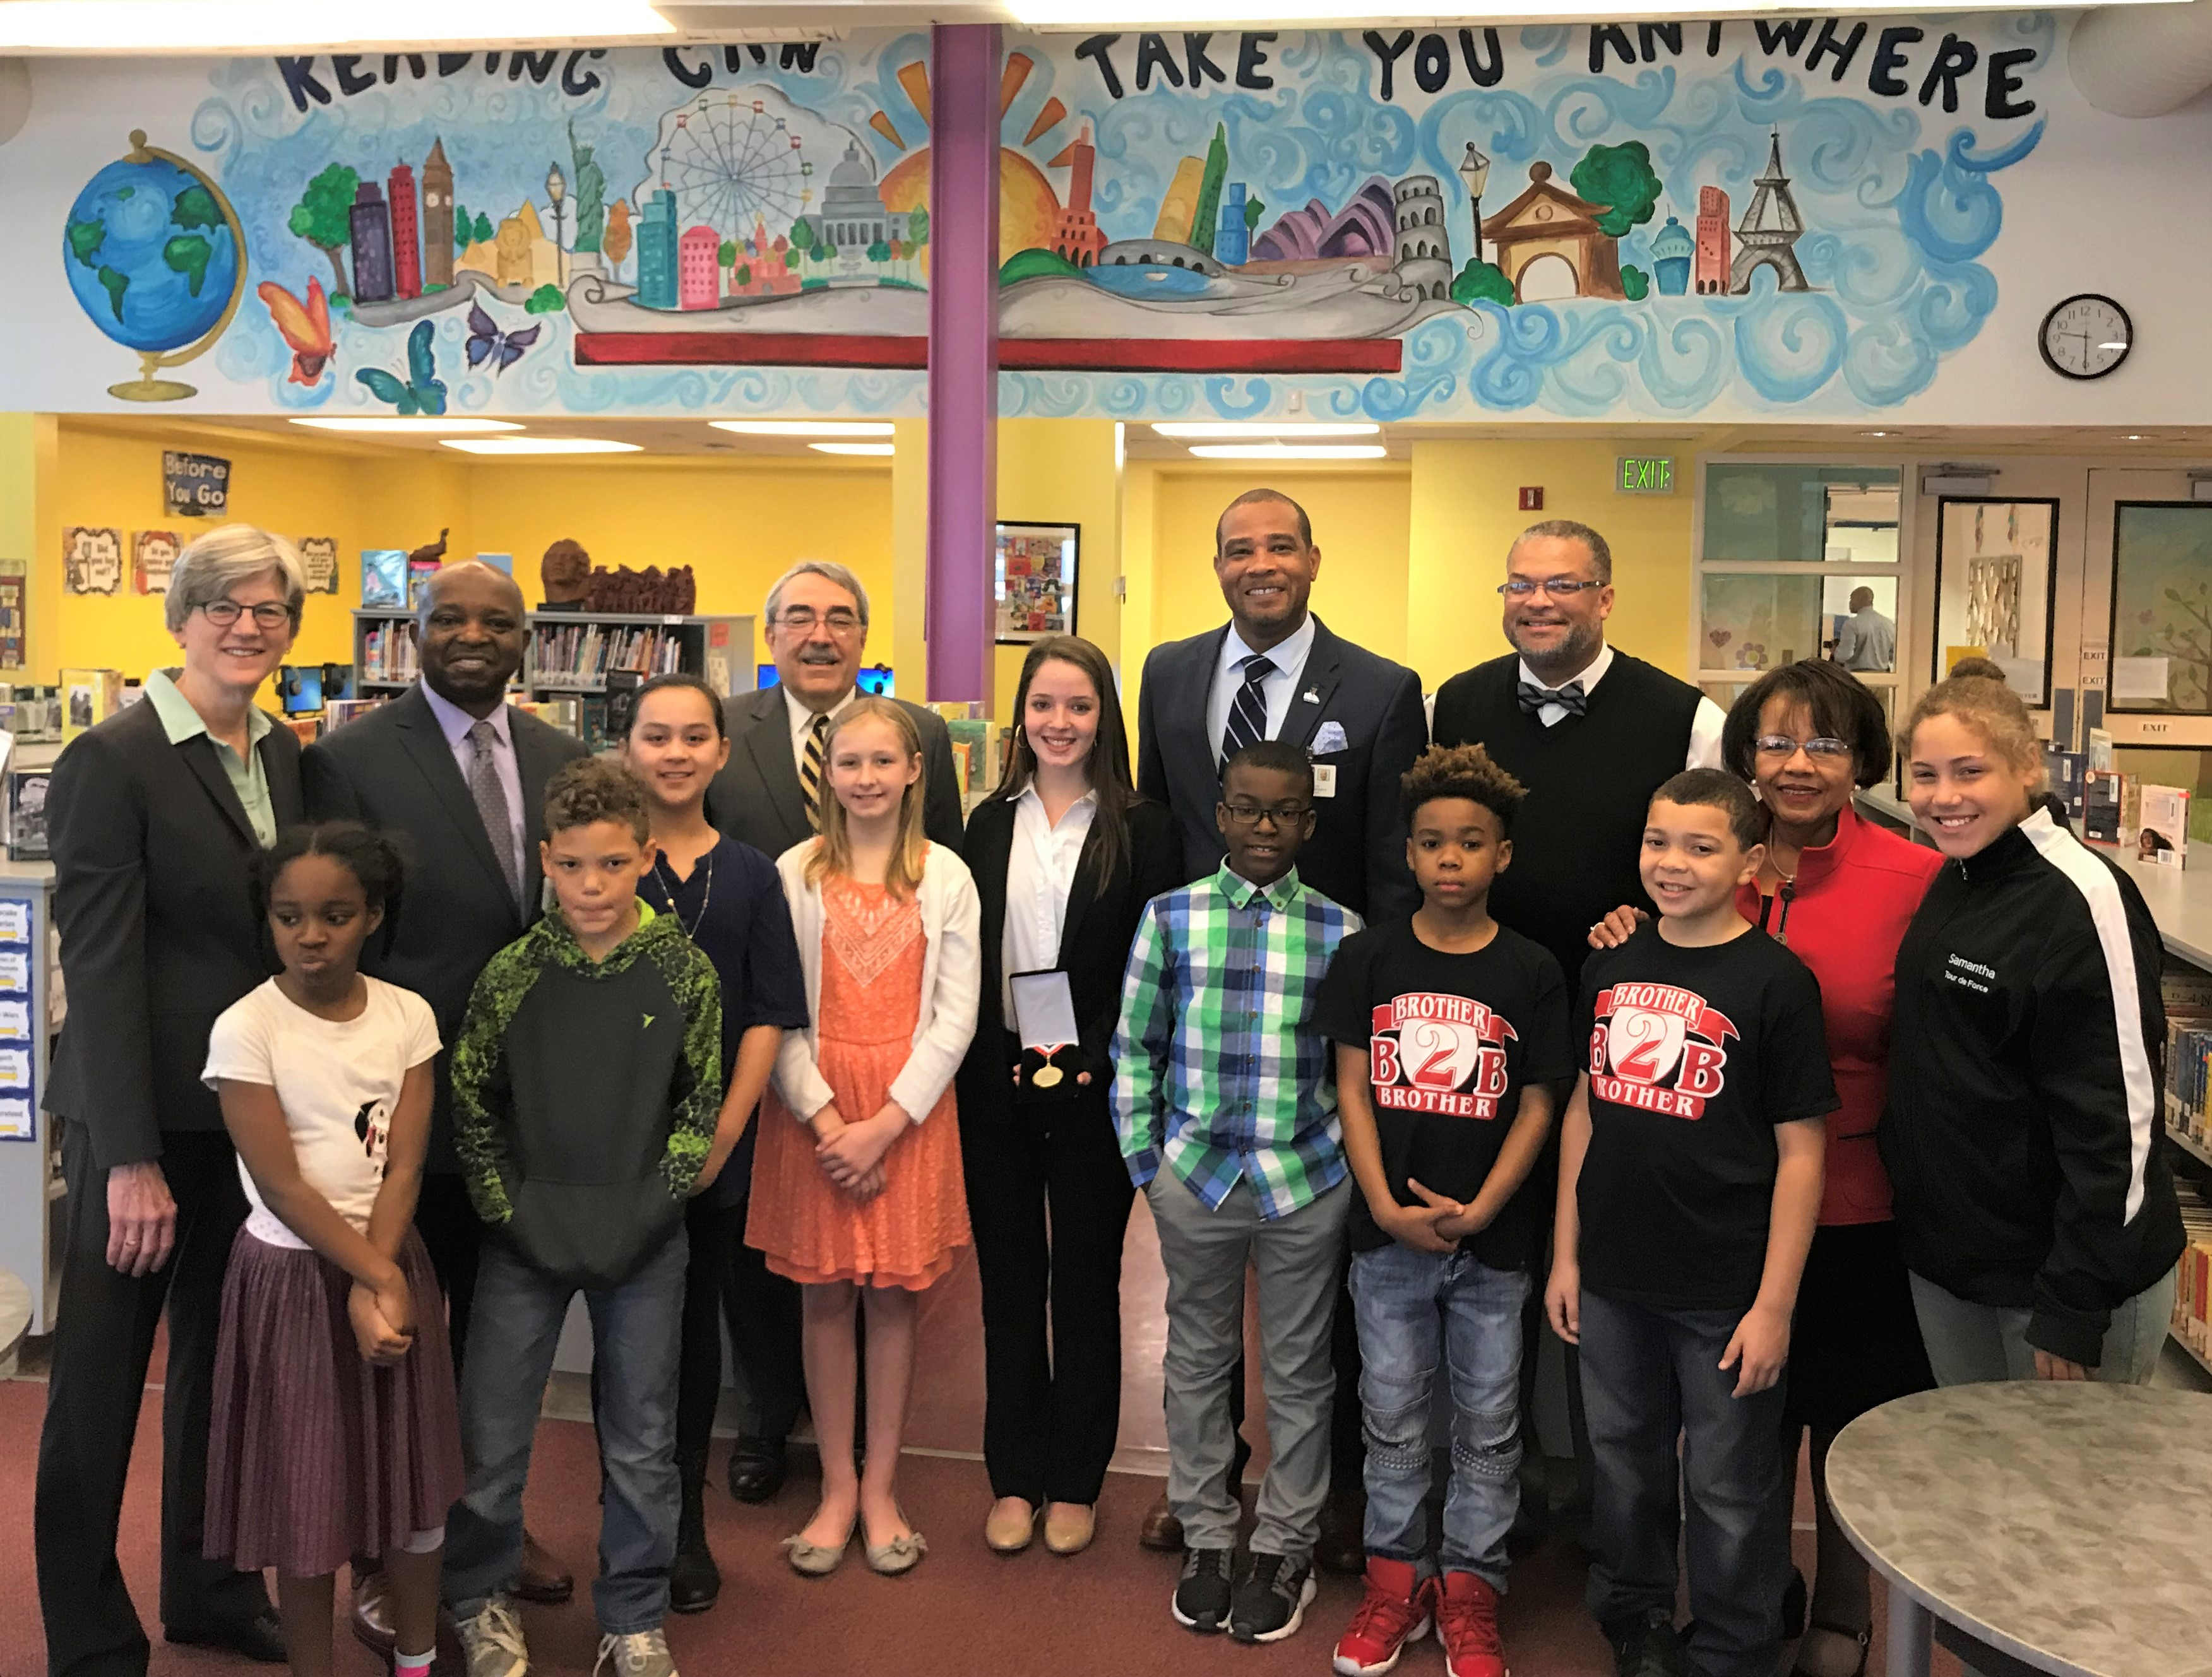 Congressman Butterfield Visits Students at Pearsontown Elementary School in Durham